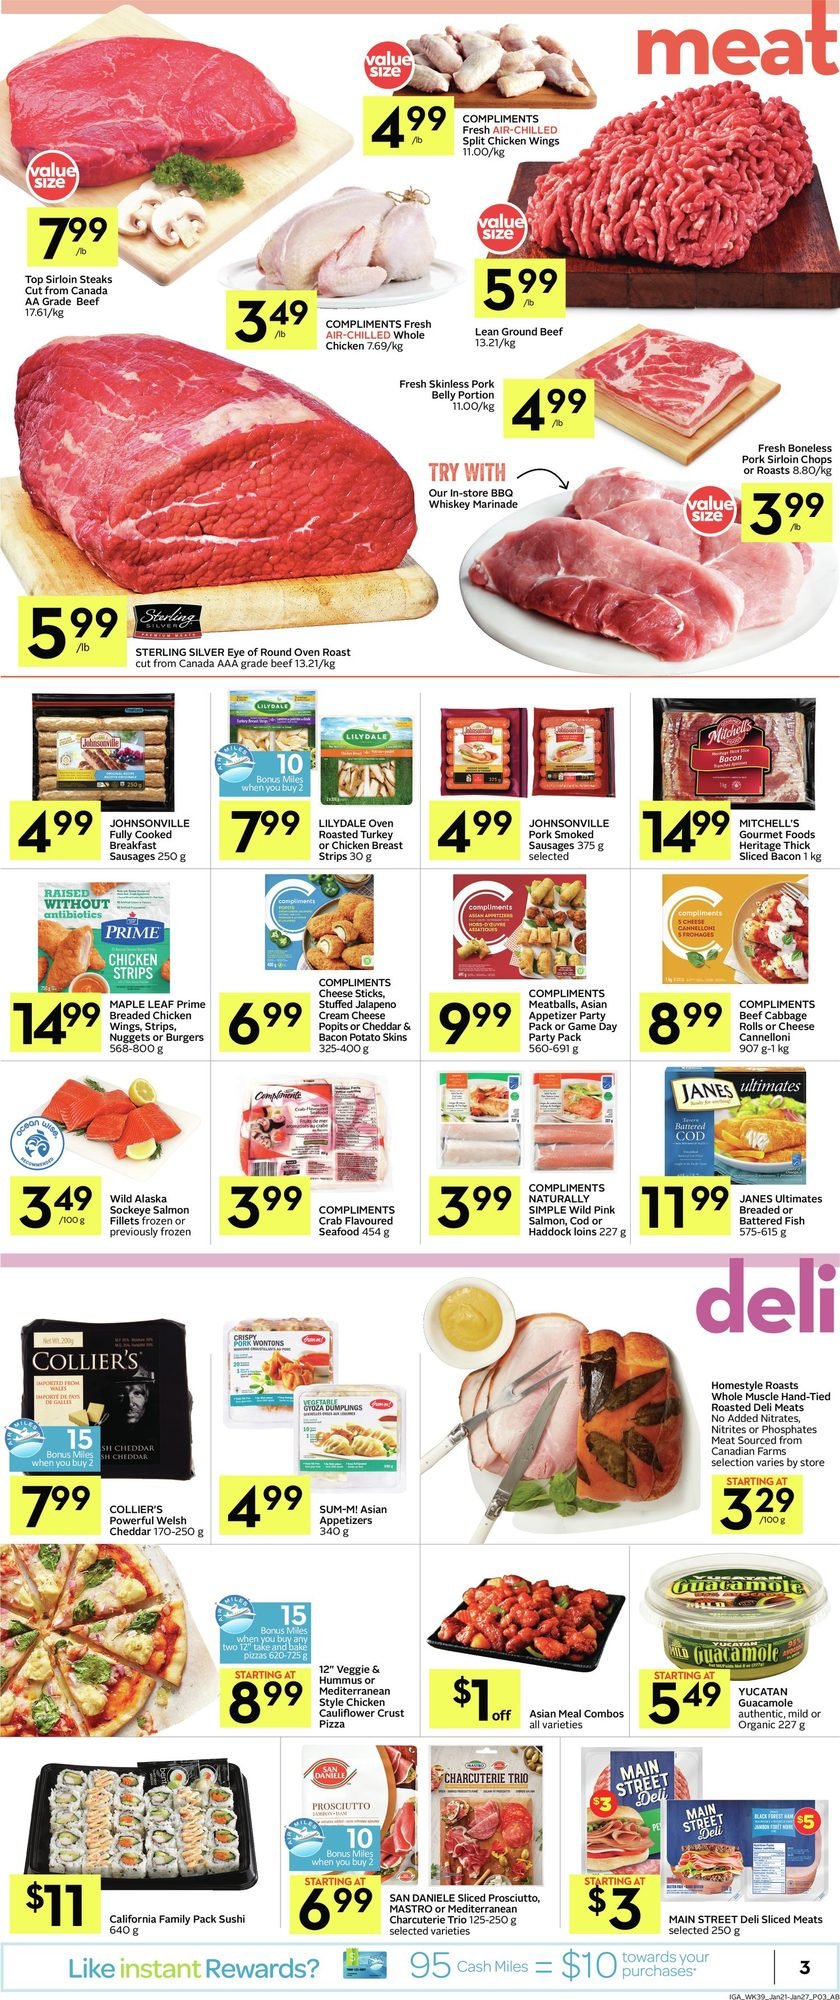 IGA - Weekly Flyer Specials - Page 3